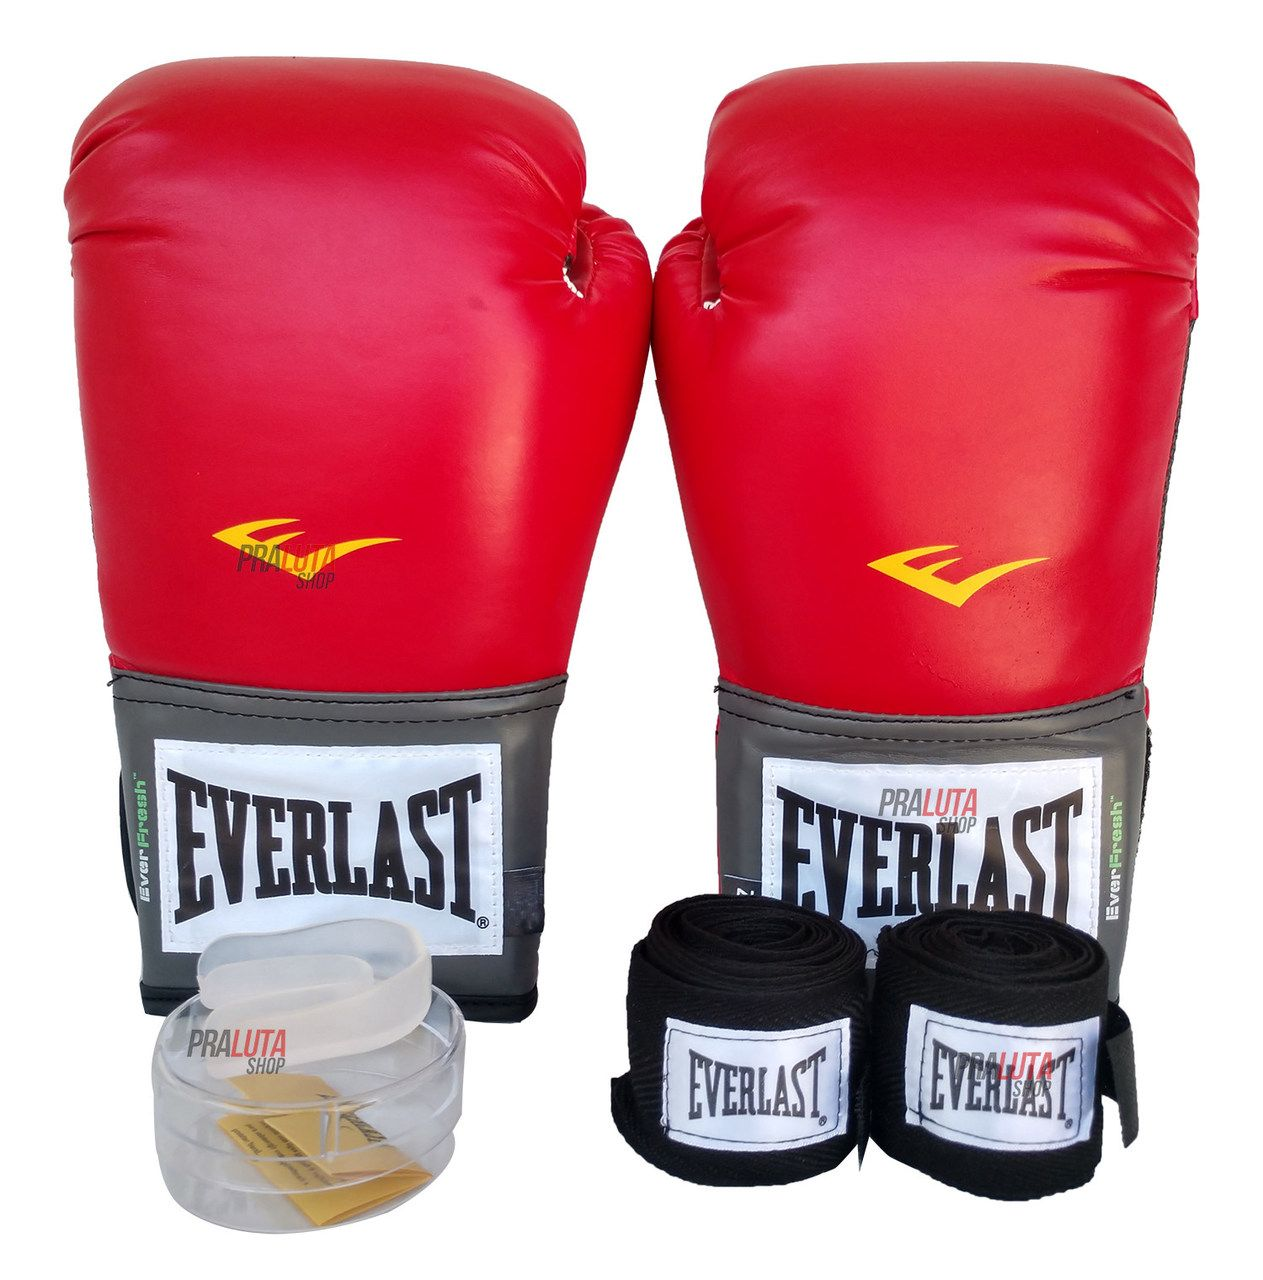 Kit de Boxe / Muay Thai 12oz - Vermelho - Training - Everlast - PRALUTA SHOP